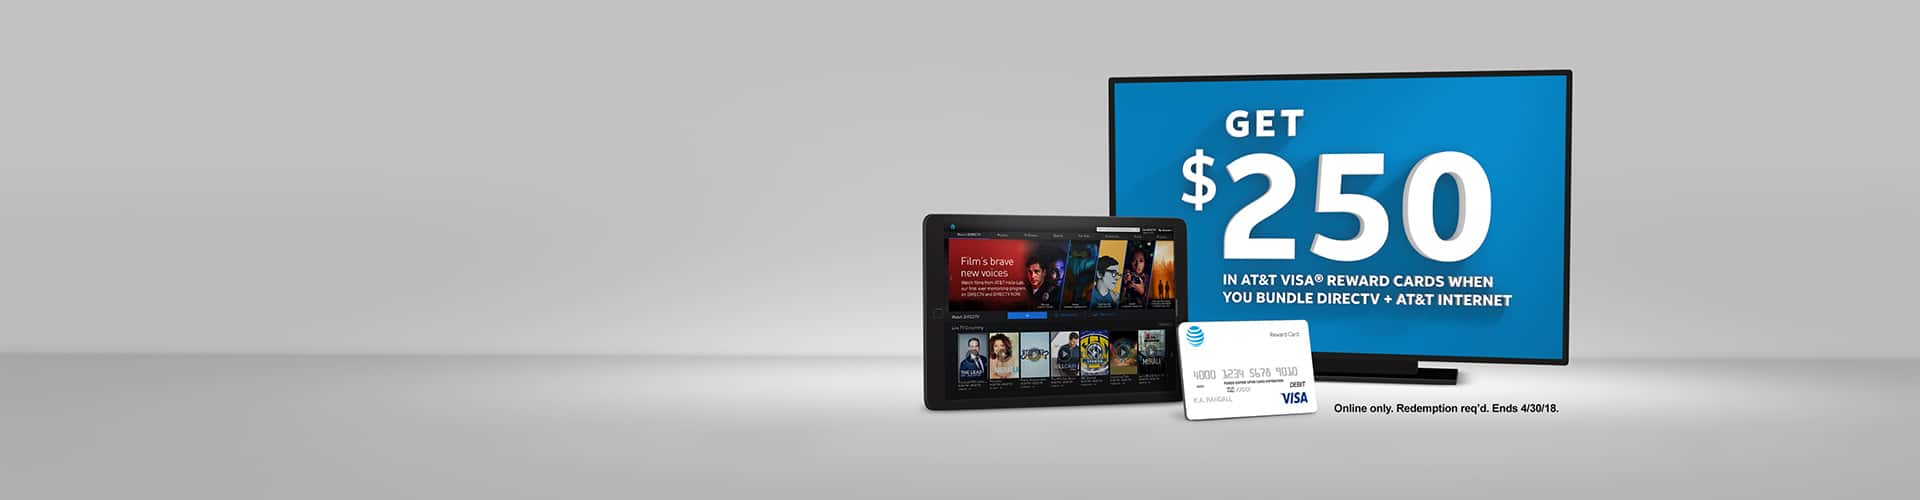 Get up to $250 in reward cards when you order U-verse TV and AT&T Internet online